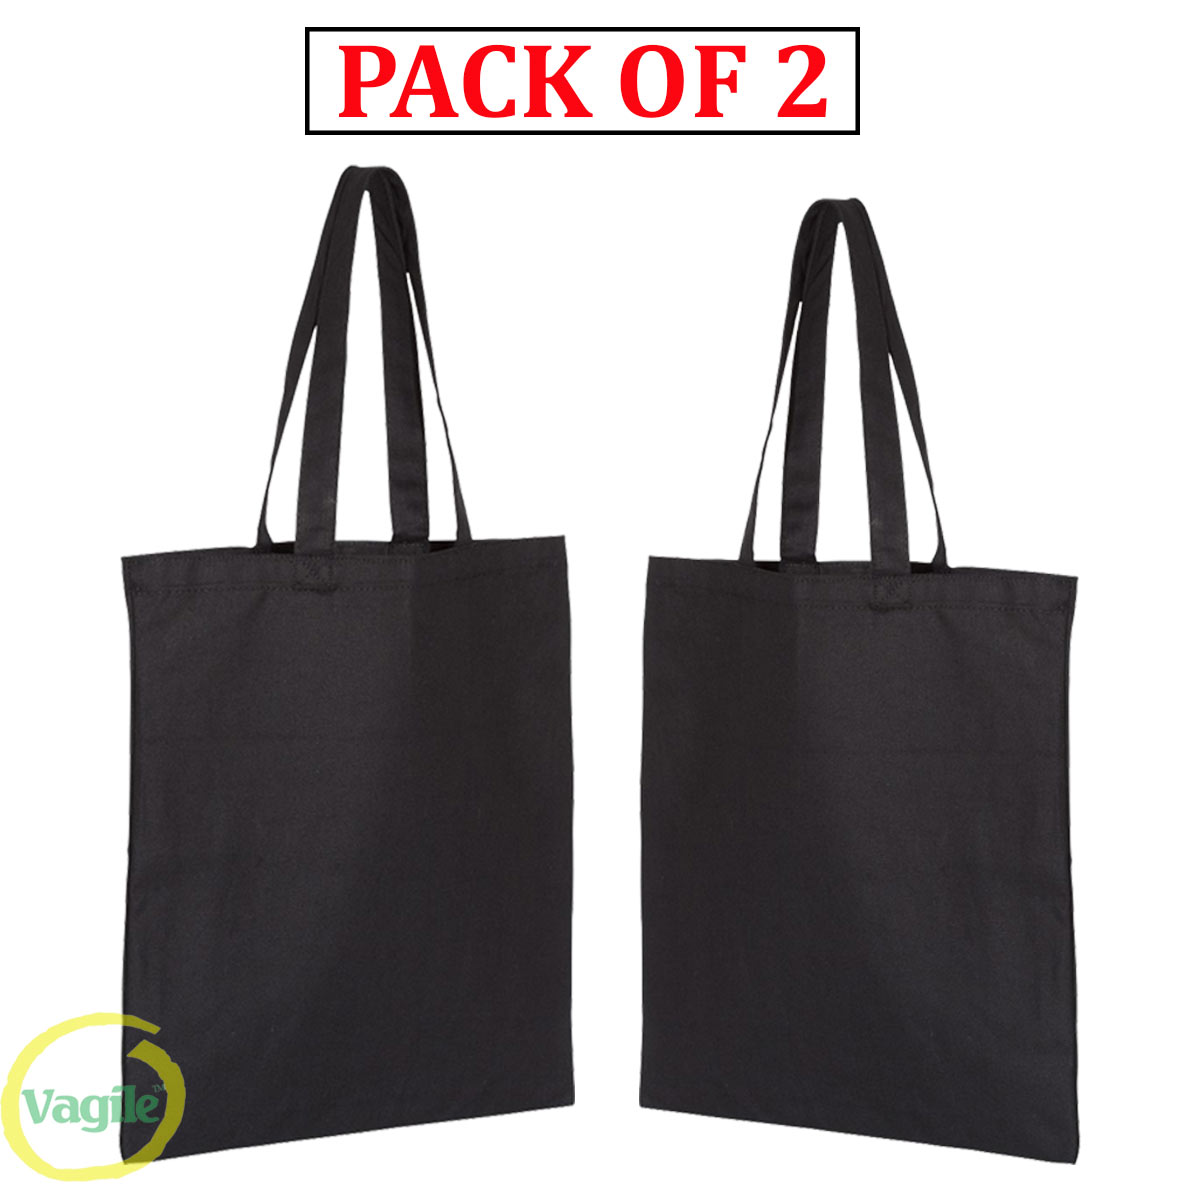 Pack of 2 shopping bag reusable foldable eco-friendly Bags cotton handle tote Black